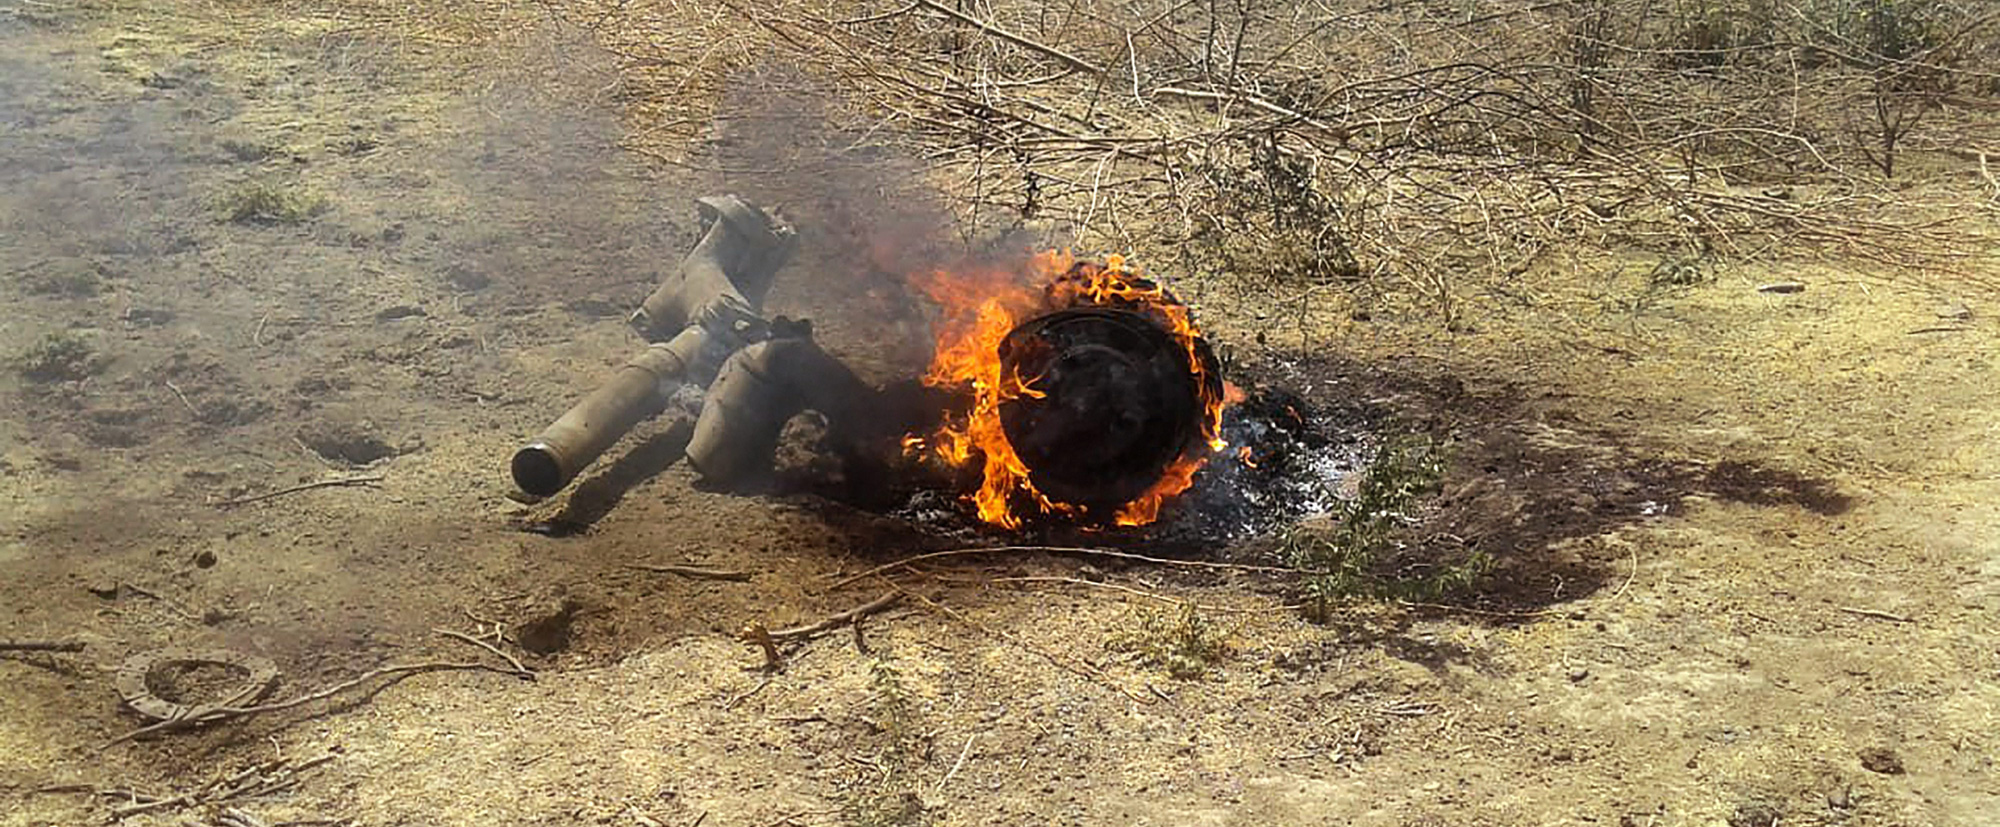 Remains of the fighter plane MiG 27 which crashed at Sirohi near Jodhpur in Rajasthan on Sunday, March 31, 2019.